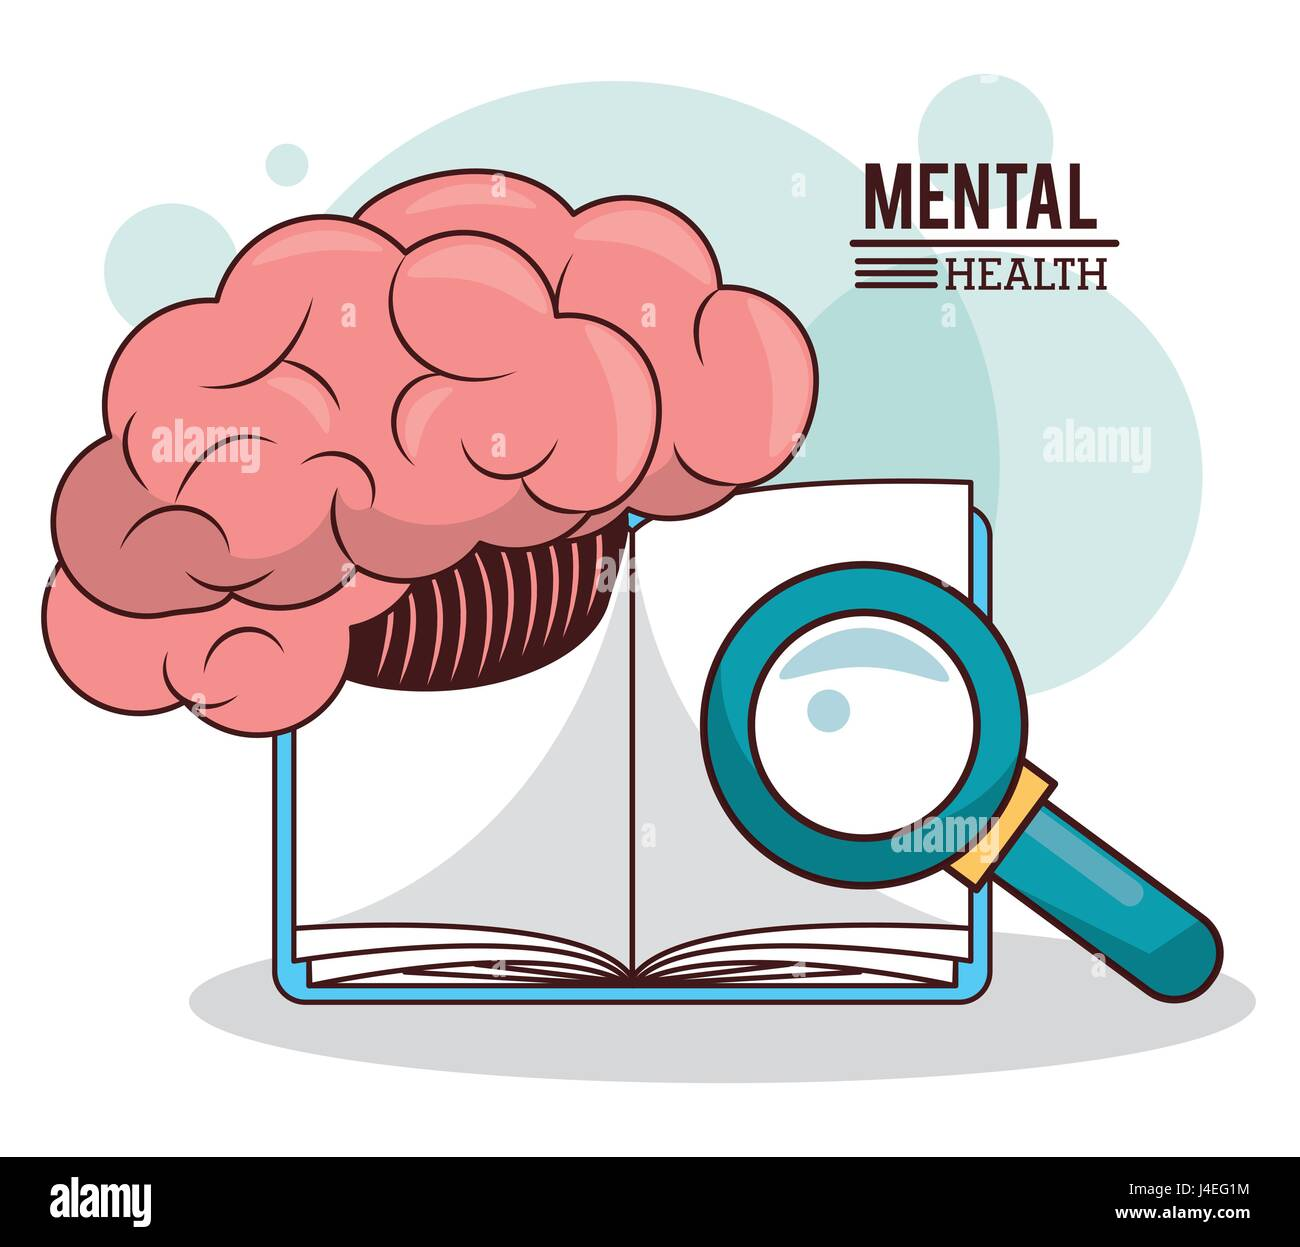 mental health, brain book magnifier knowledge - Stock Image